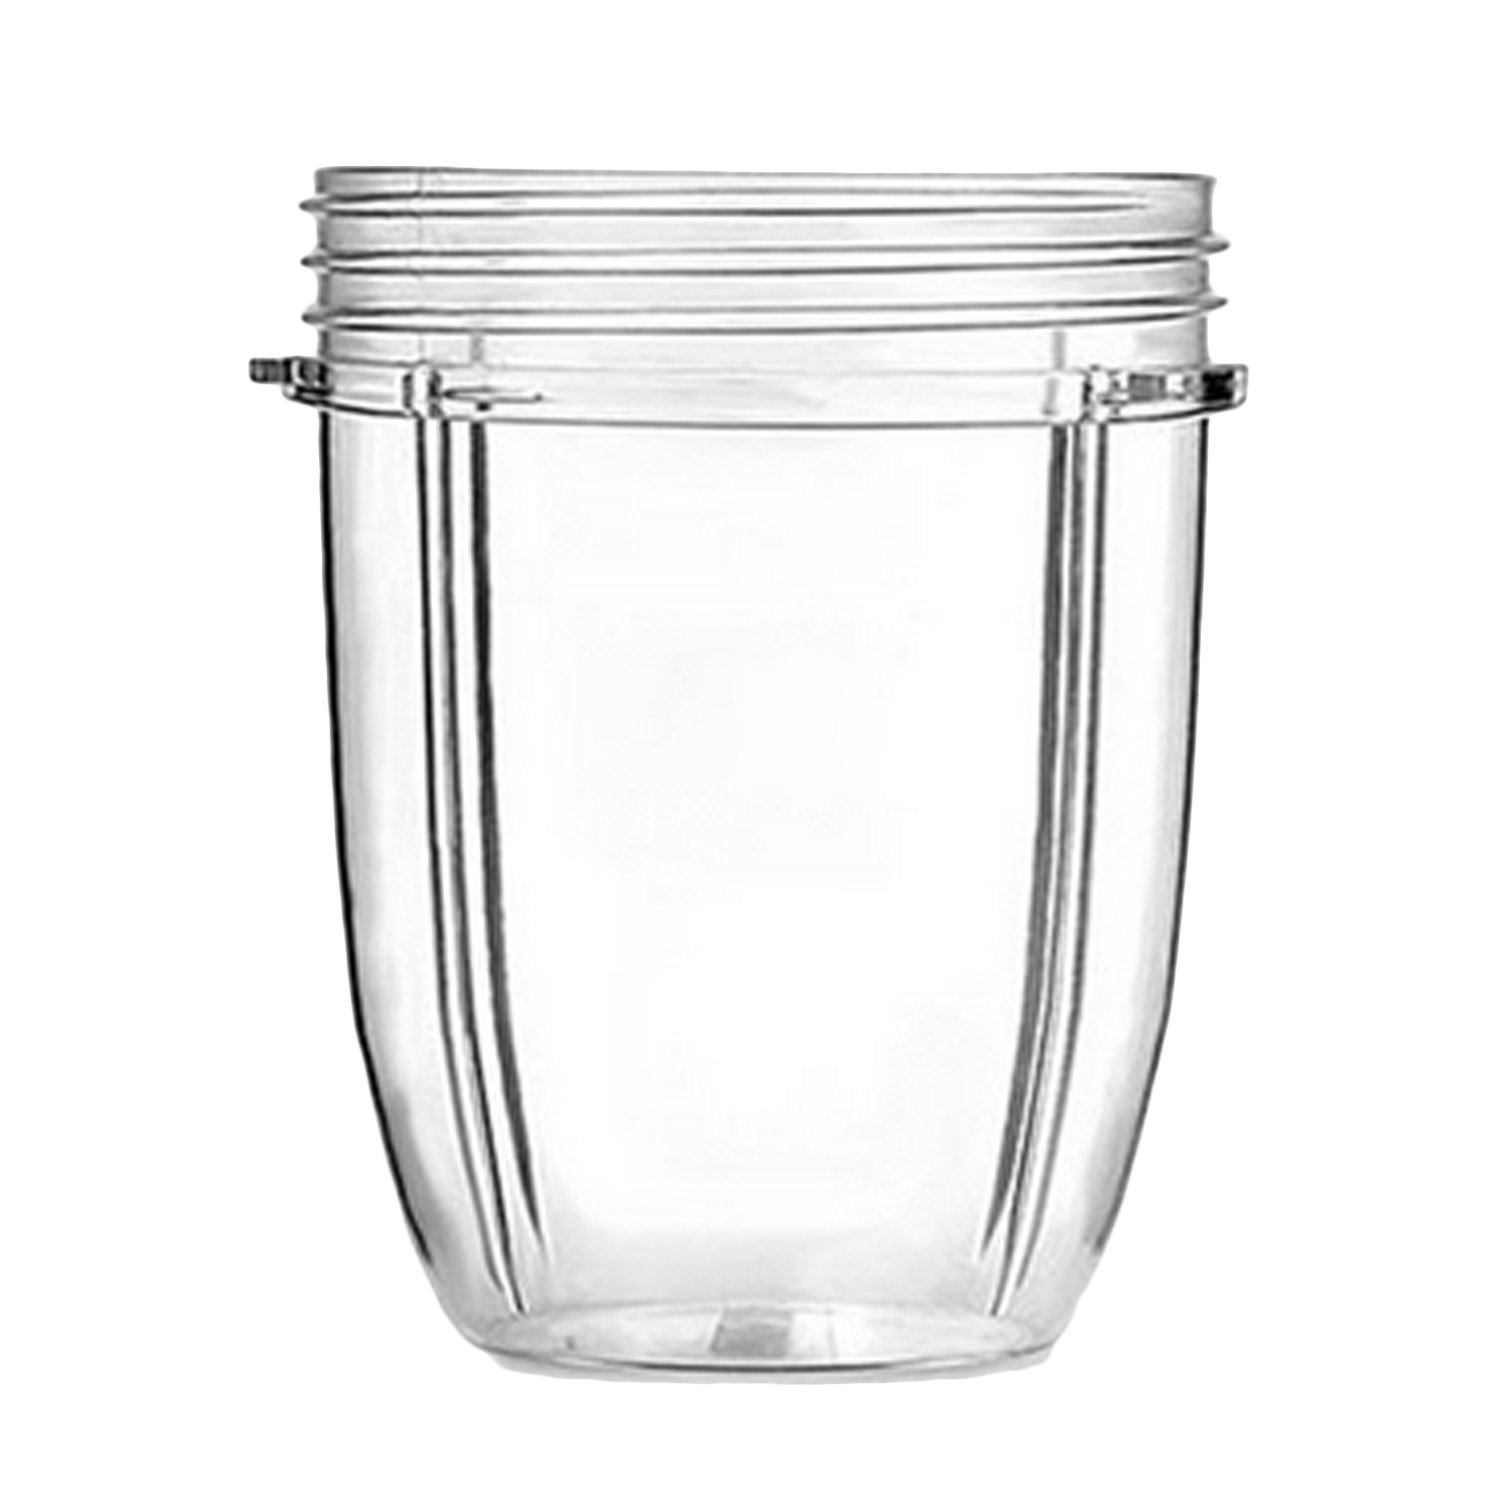 18oz Small Clear Cups Mugs Replacement Part Juicer Accessories for NUTRiBULLET Nutri Bullet Blender Juicer Migavan